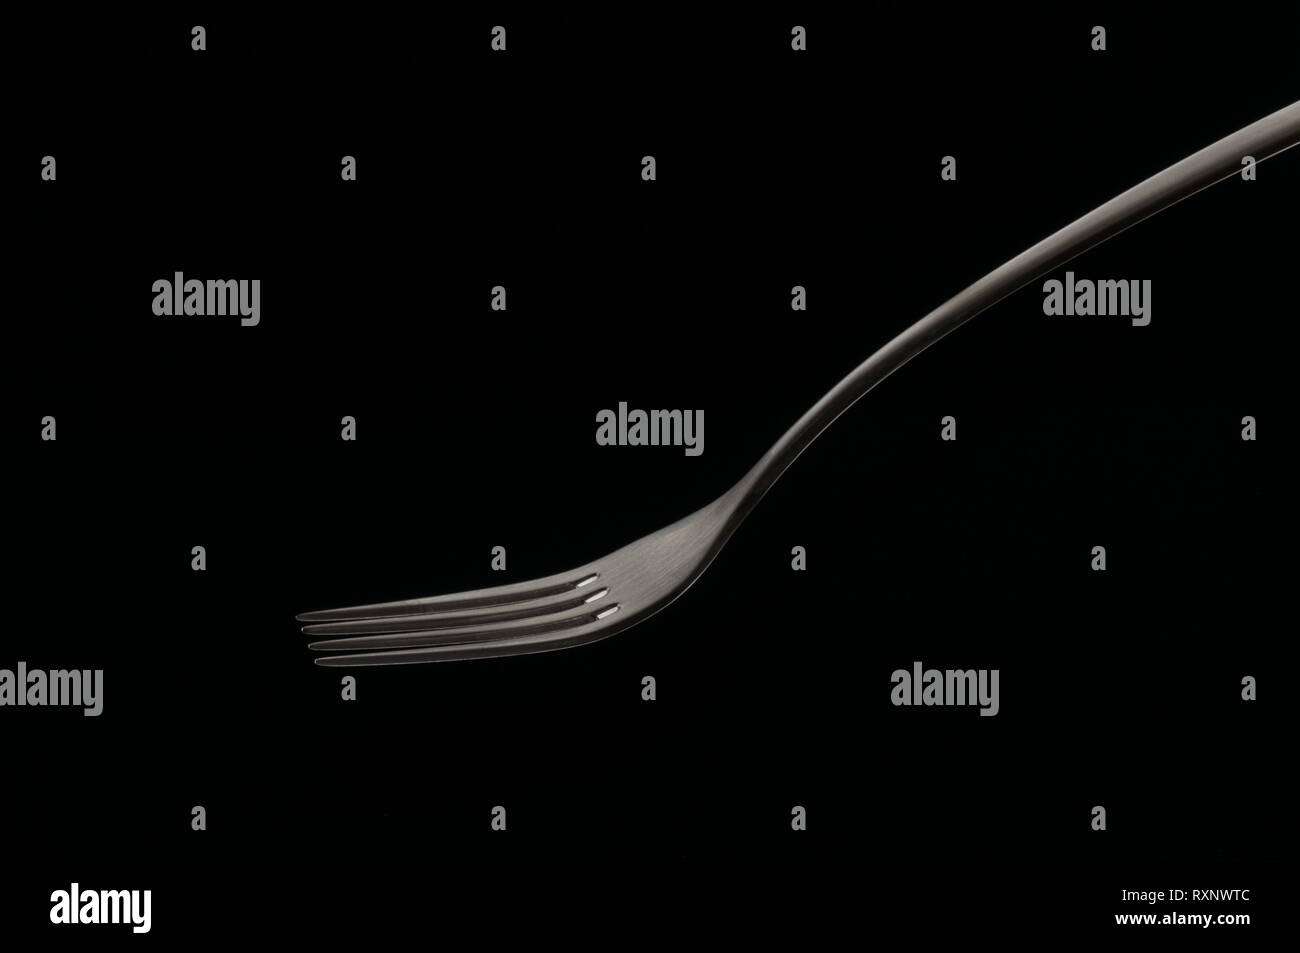 Isolated metal single fork on black background in glowing light, minimalistic abstract cooking concept. Interesting unusual close-up composition. - Stock Image